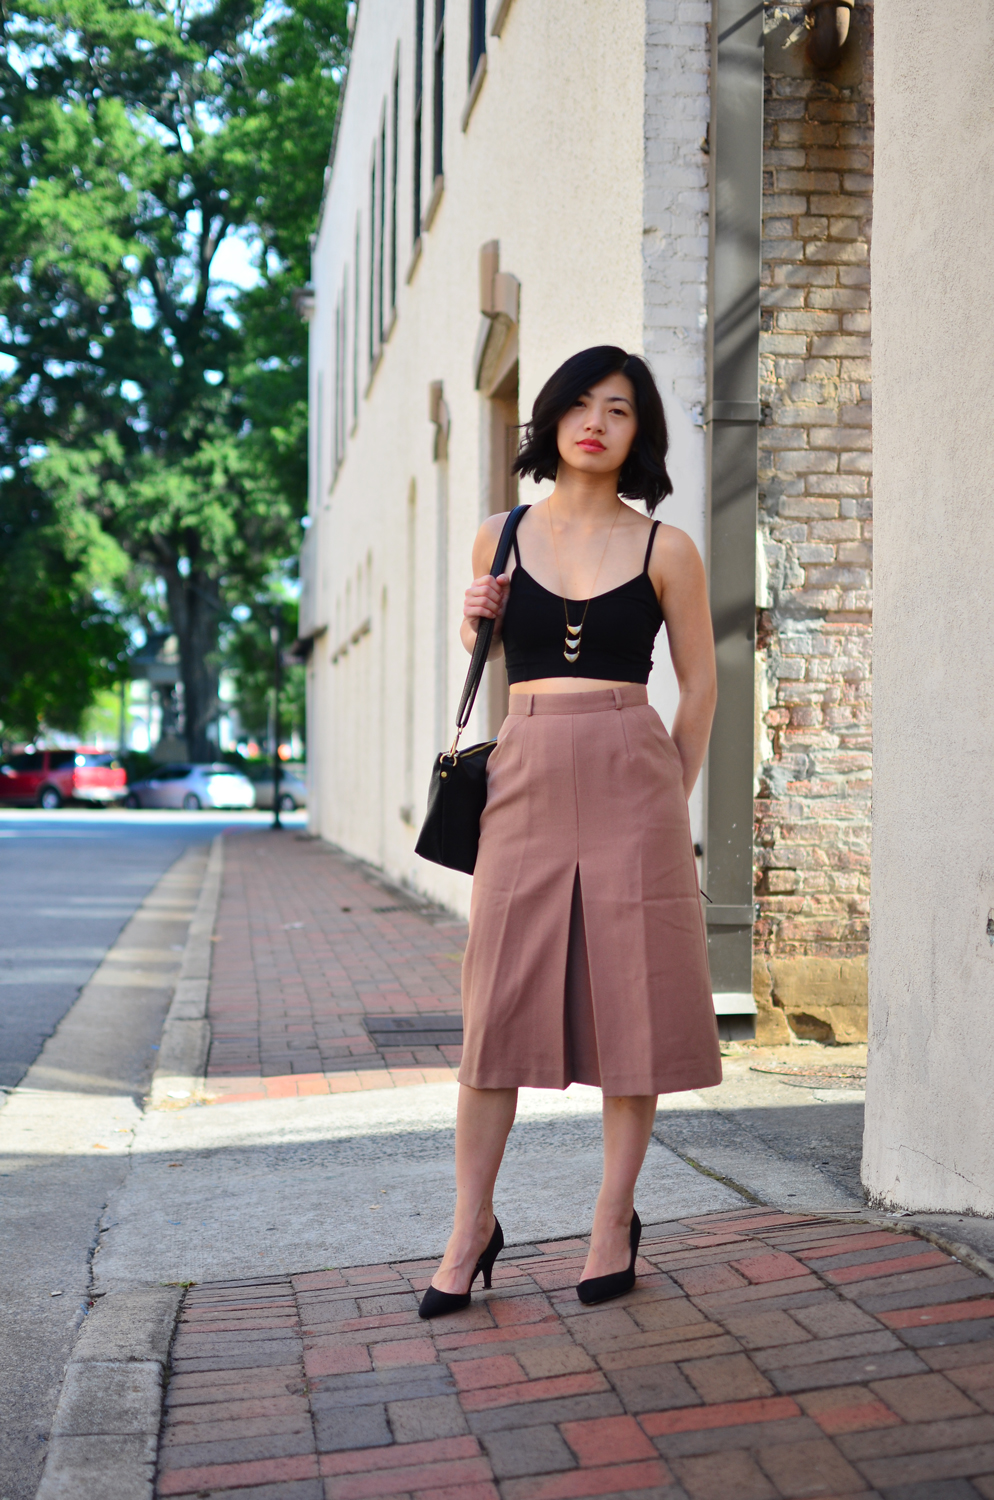 TNA Sierra bra top, vintage midi skirt, Crafts and Love Lorde necklace, ASOS Skittle pumps, Free People convertible vegan crossbody.